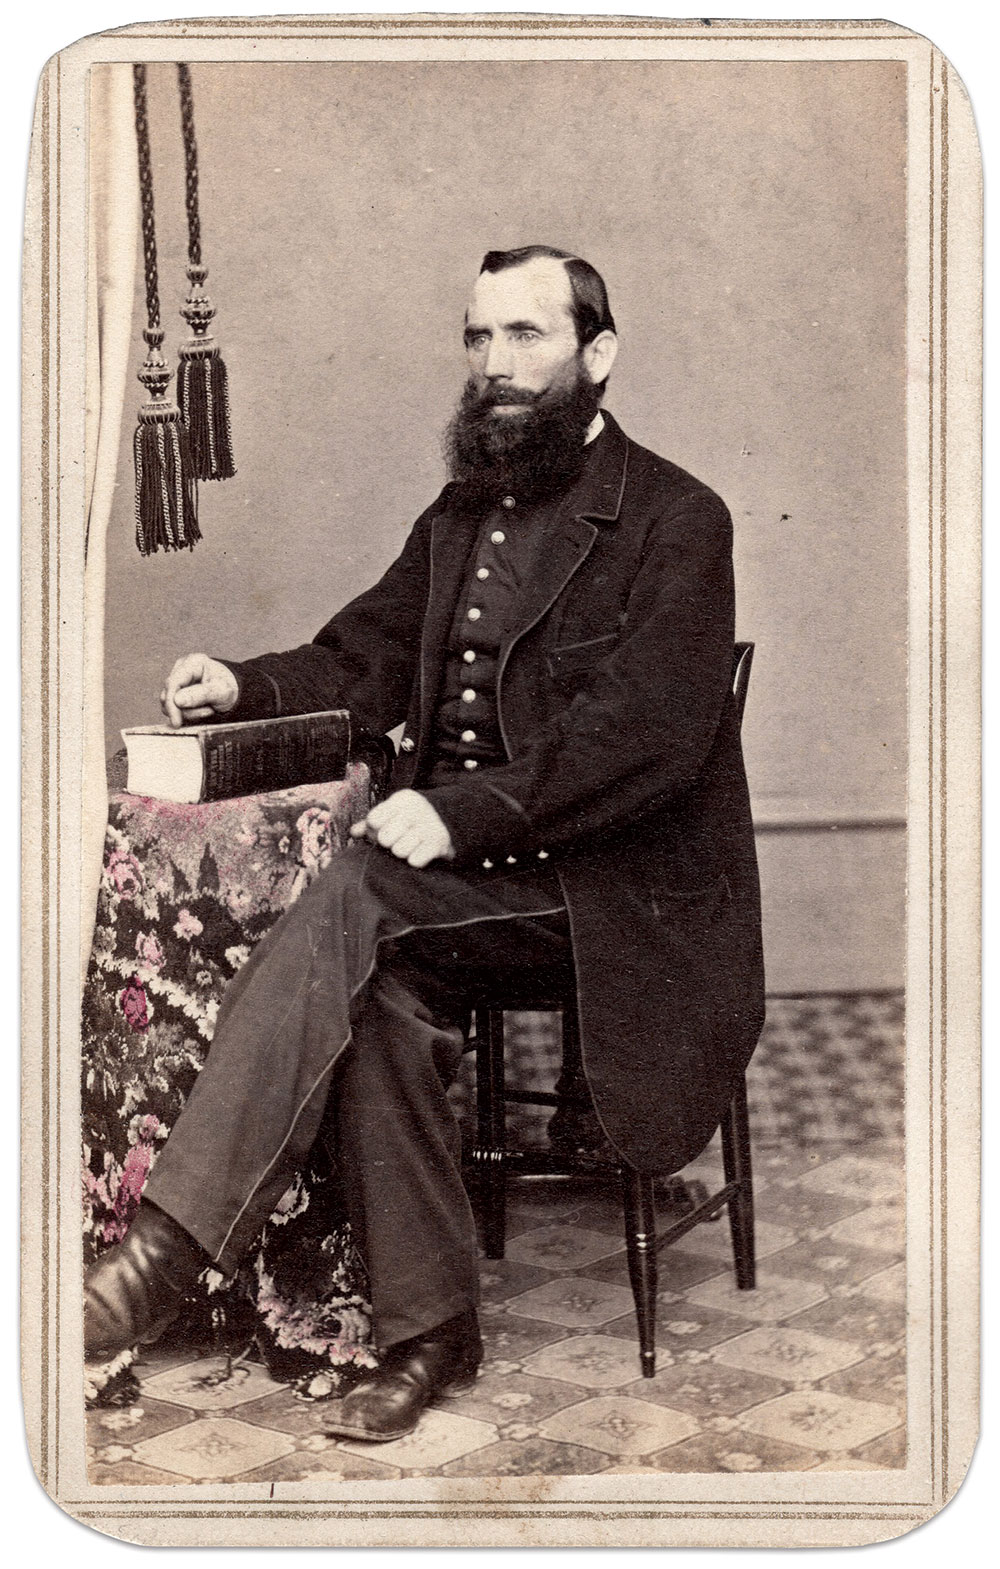 Carte de visite by G.B. Hall of Little Falls, N.Y. Charles Joyce Collection.